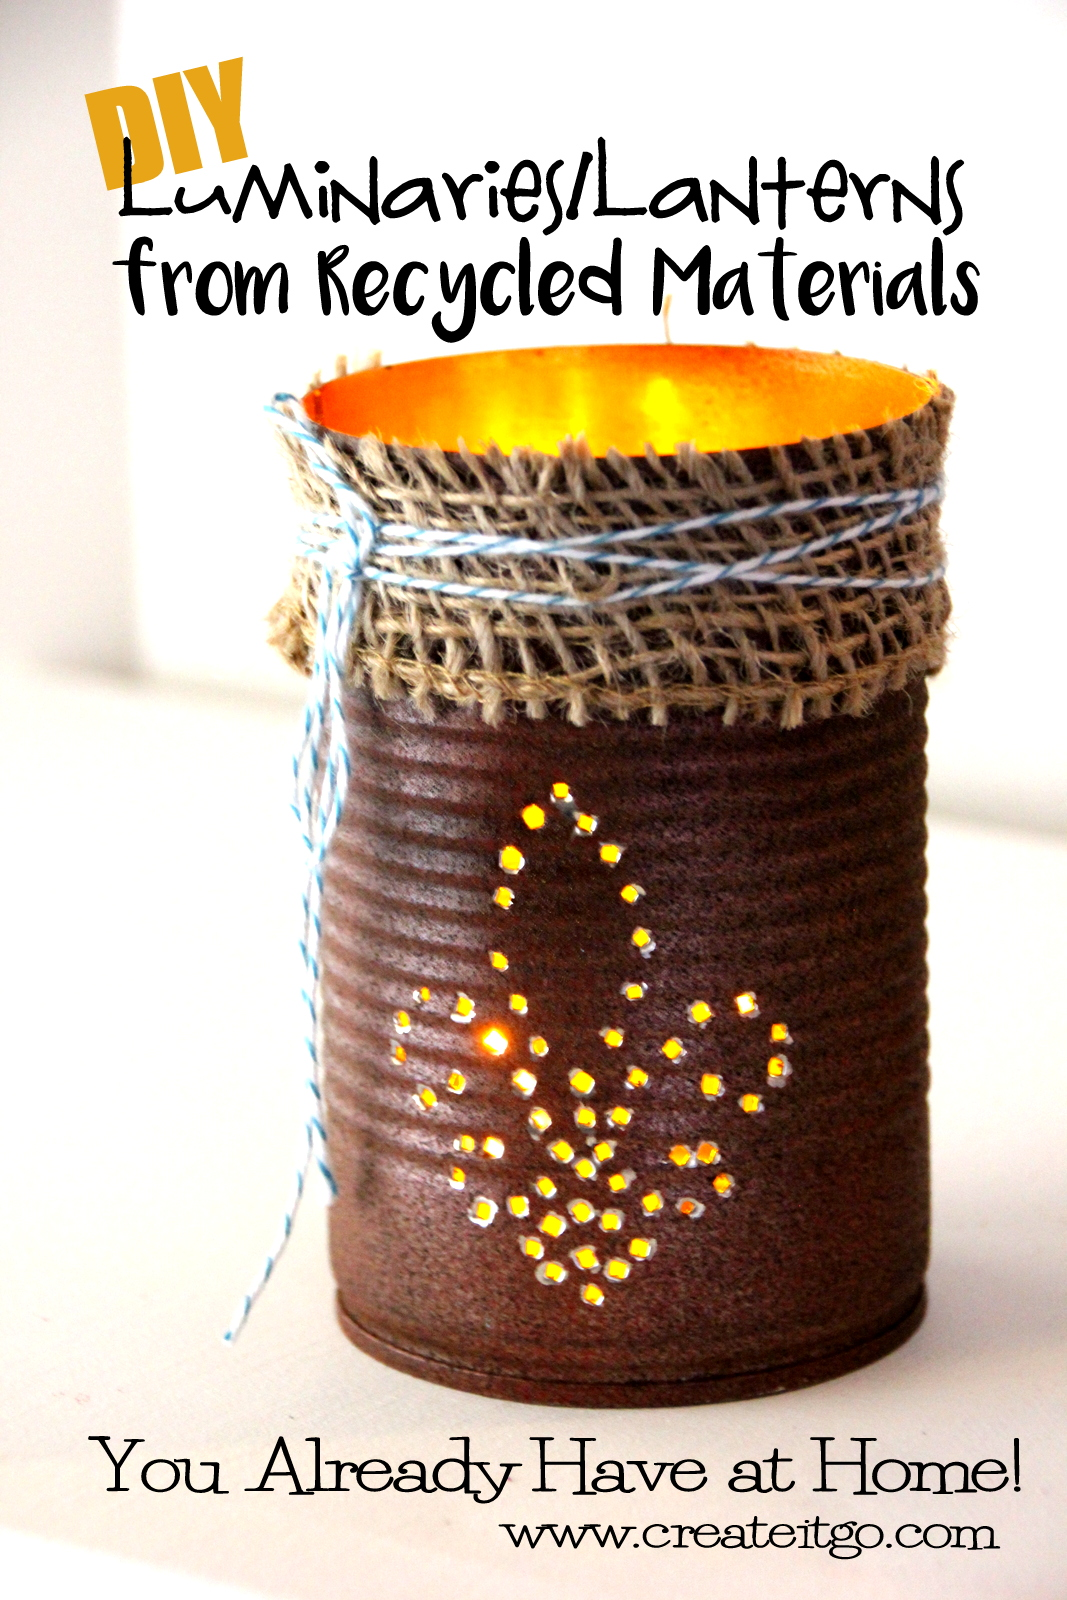 Diy luminaries lanterns with recycled materials you for Diy crafts using recycled materials